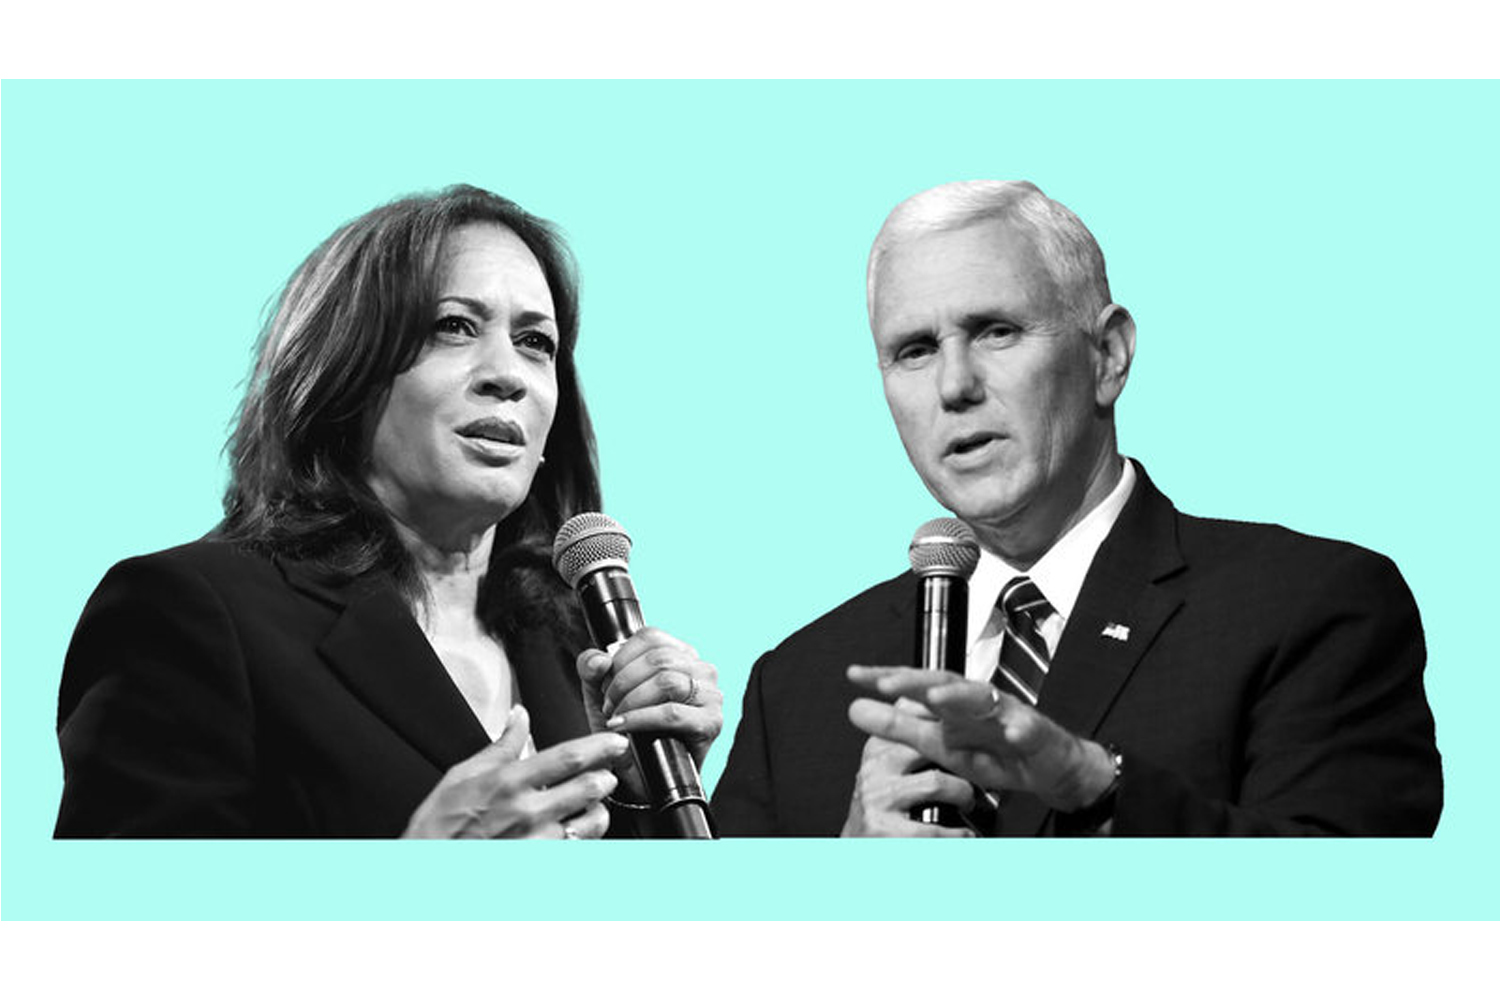 Democratic vice presidential nominee Kamala Harris and Vice President Pence.